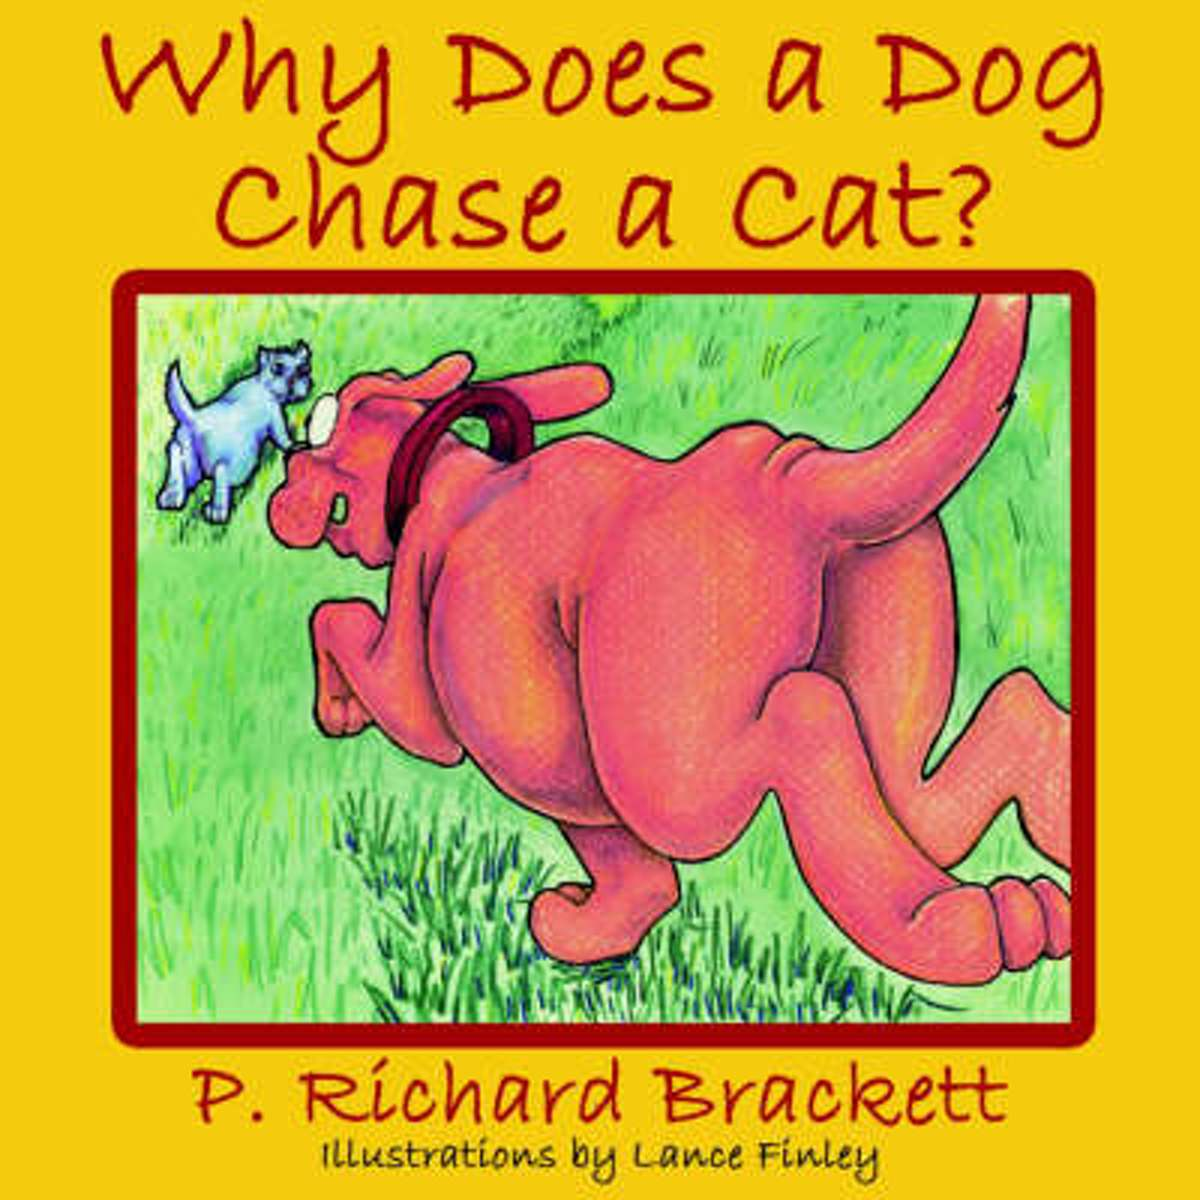 Why Does a Dog Chase a Cat?